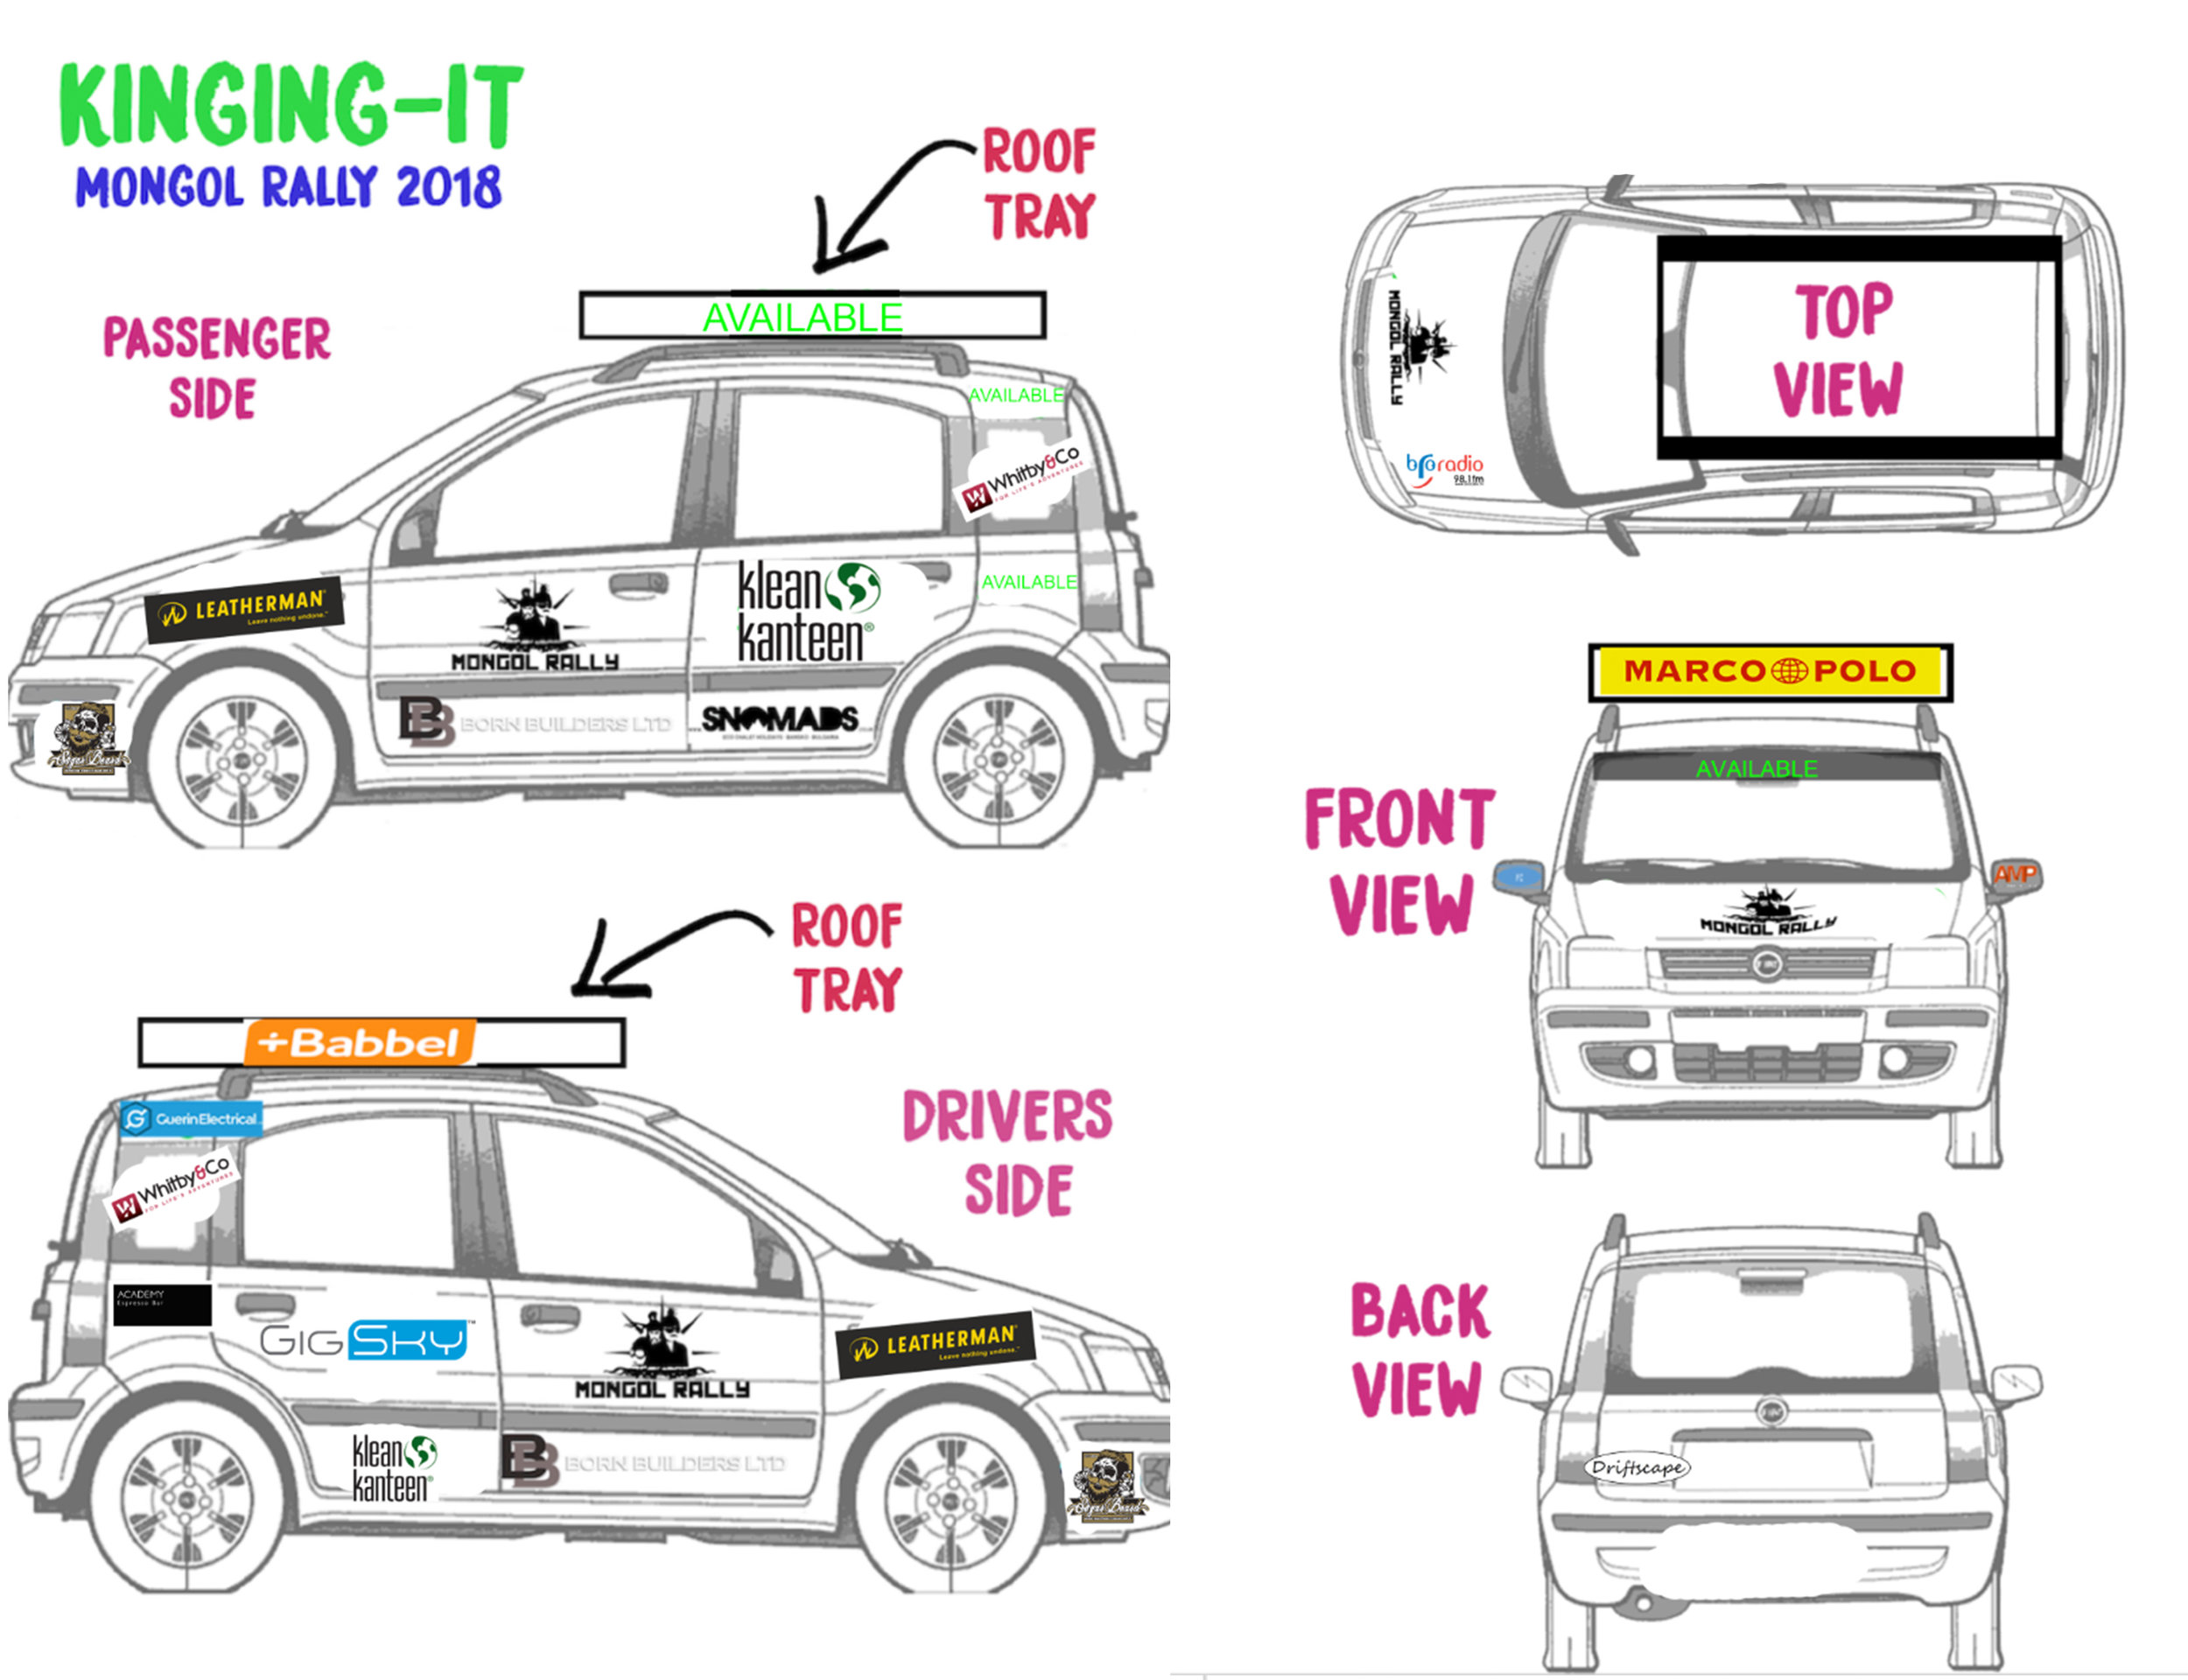 Sponsors for the Mongol Rally Car